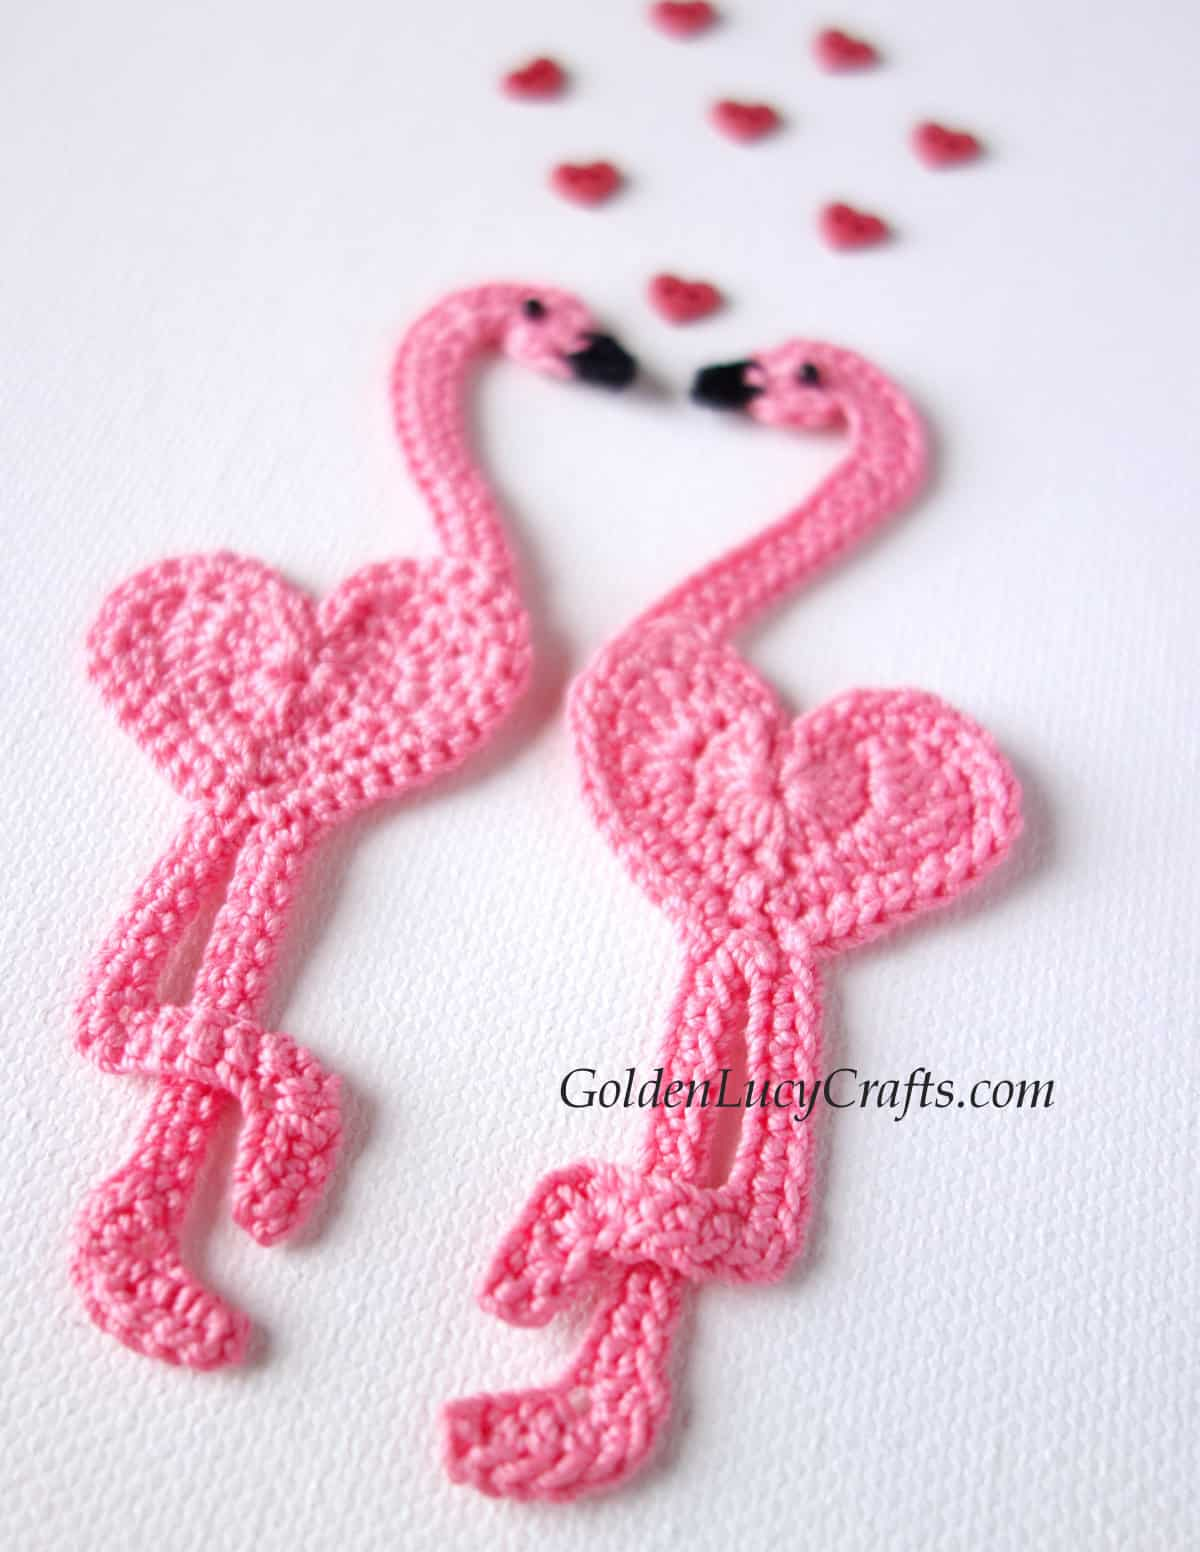 Two pink flamingo appliques close up image.